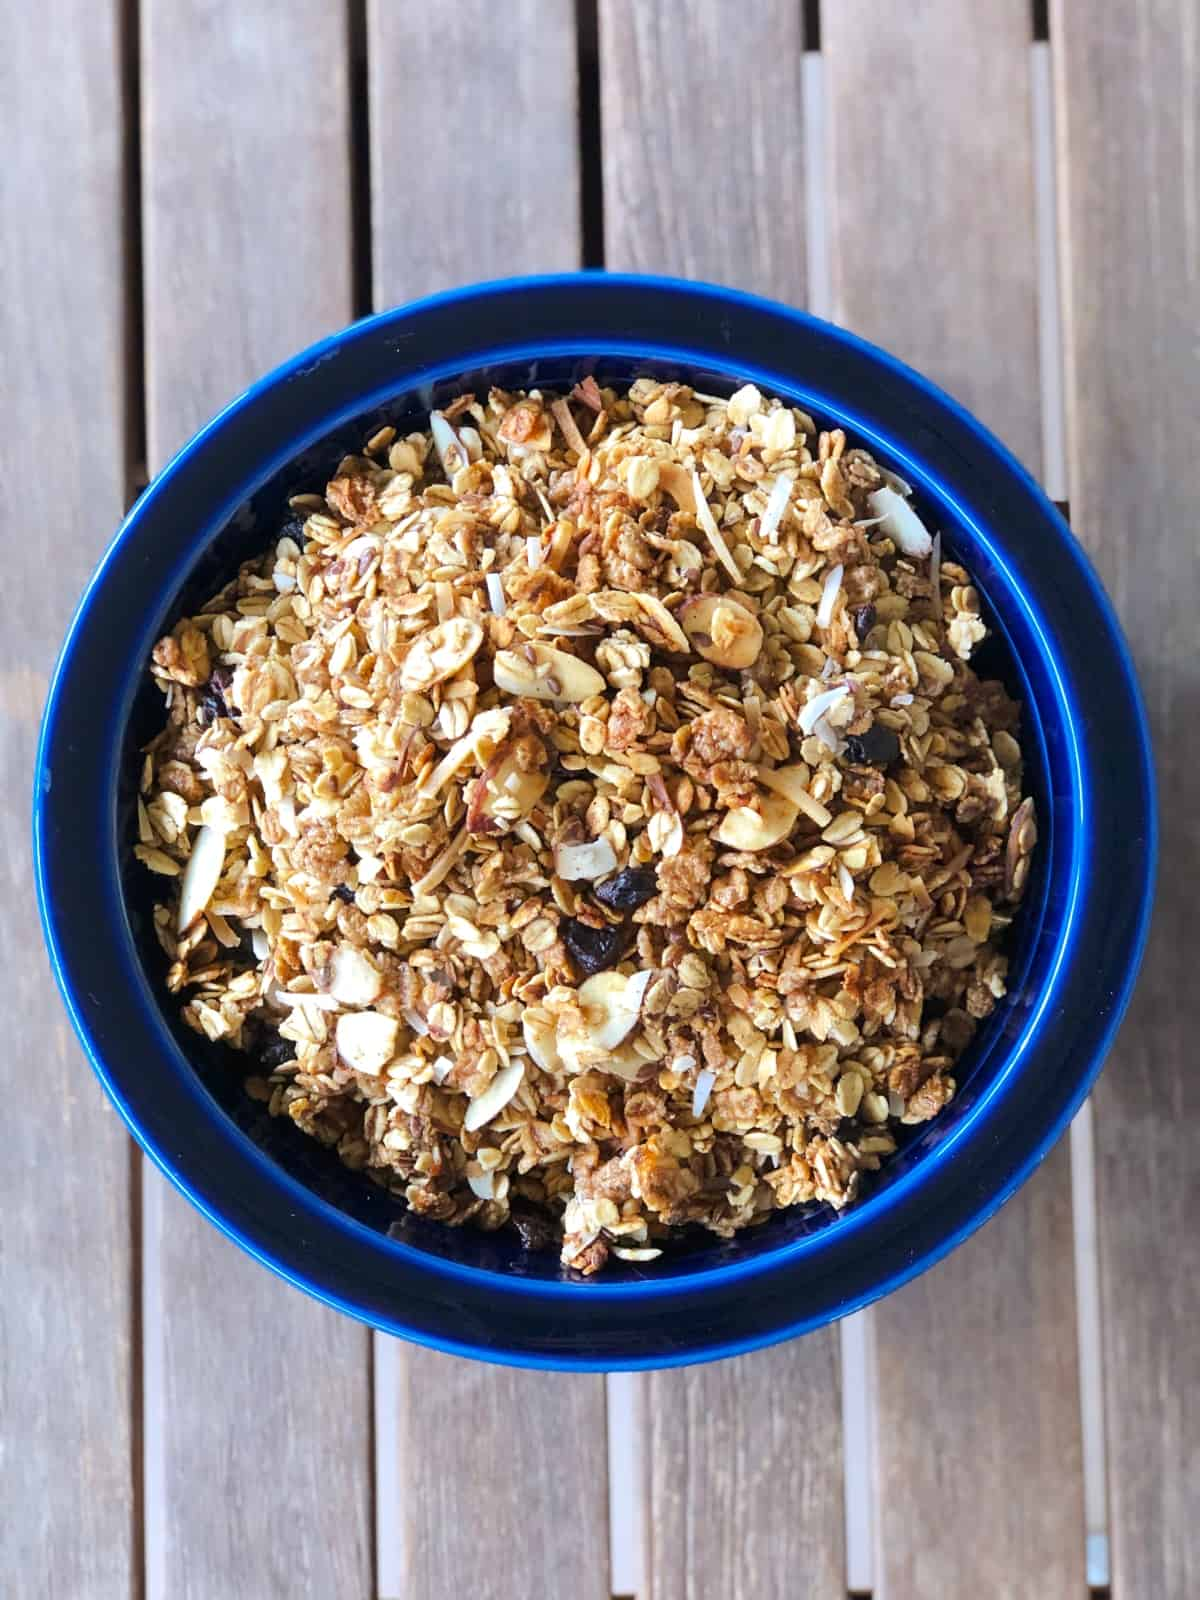 Homemade almond granola in blue bowl on wooden table.